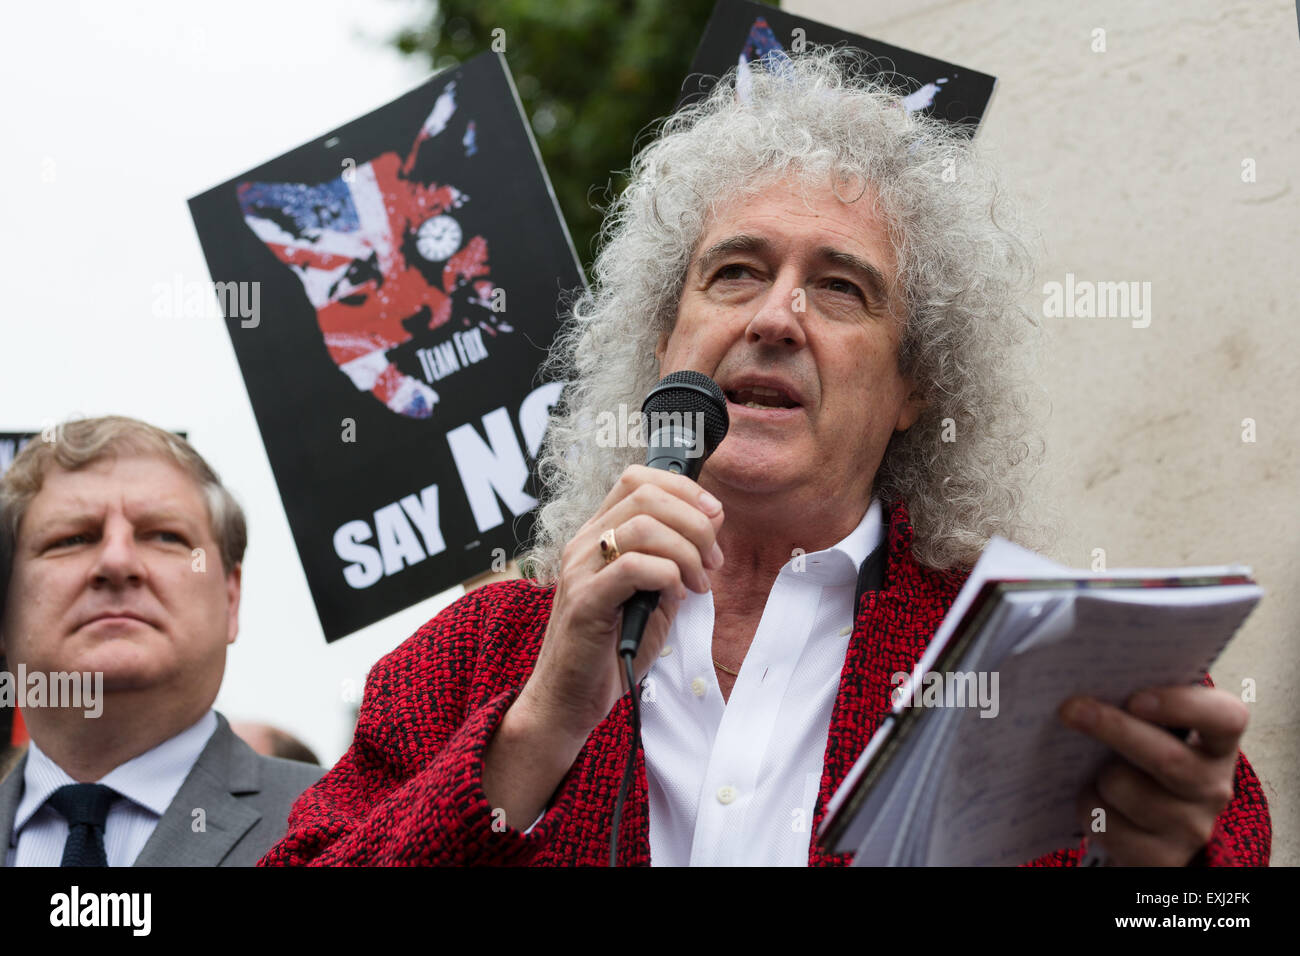 London, UK. 14th July 2015. Brian May speaks at a rally to protest against proposed changes to the Hunting Act, - Stock Image